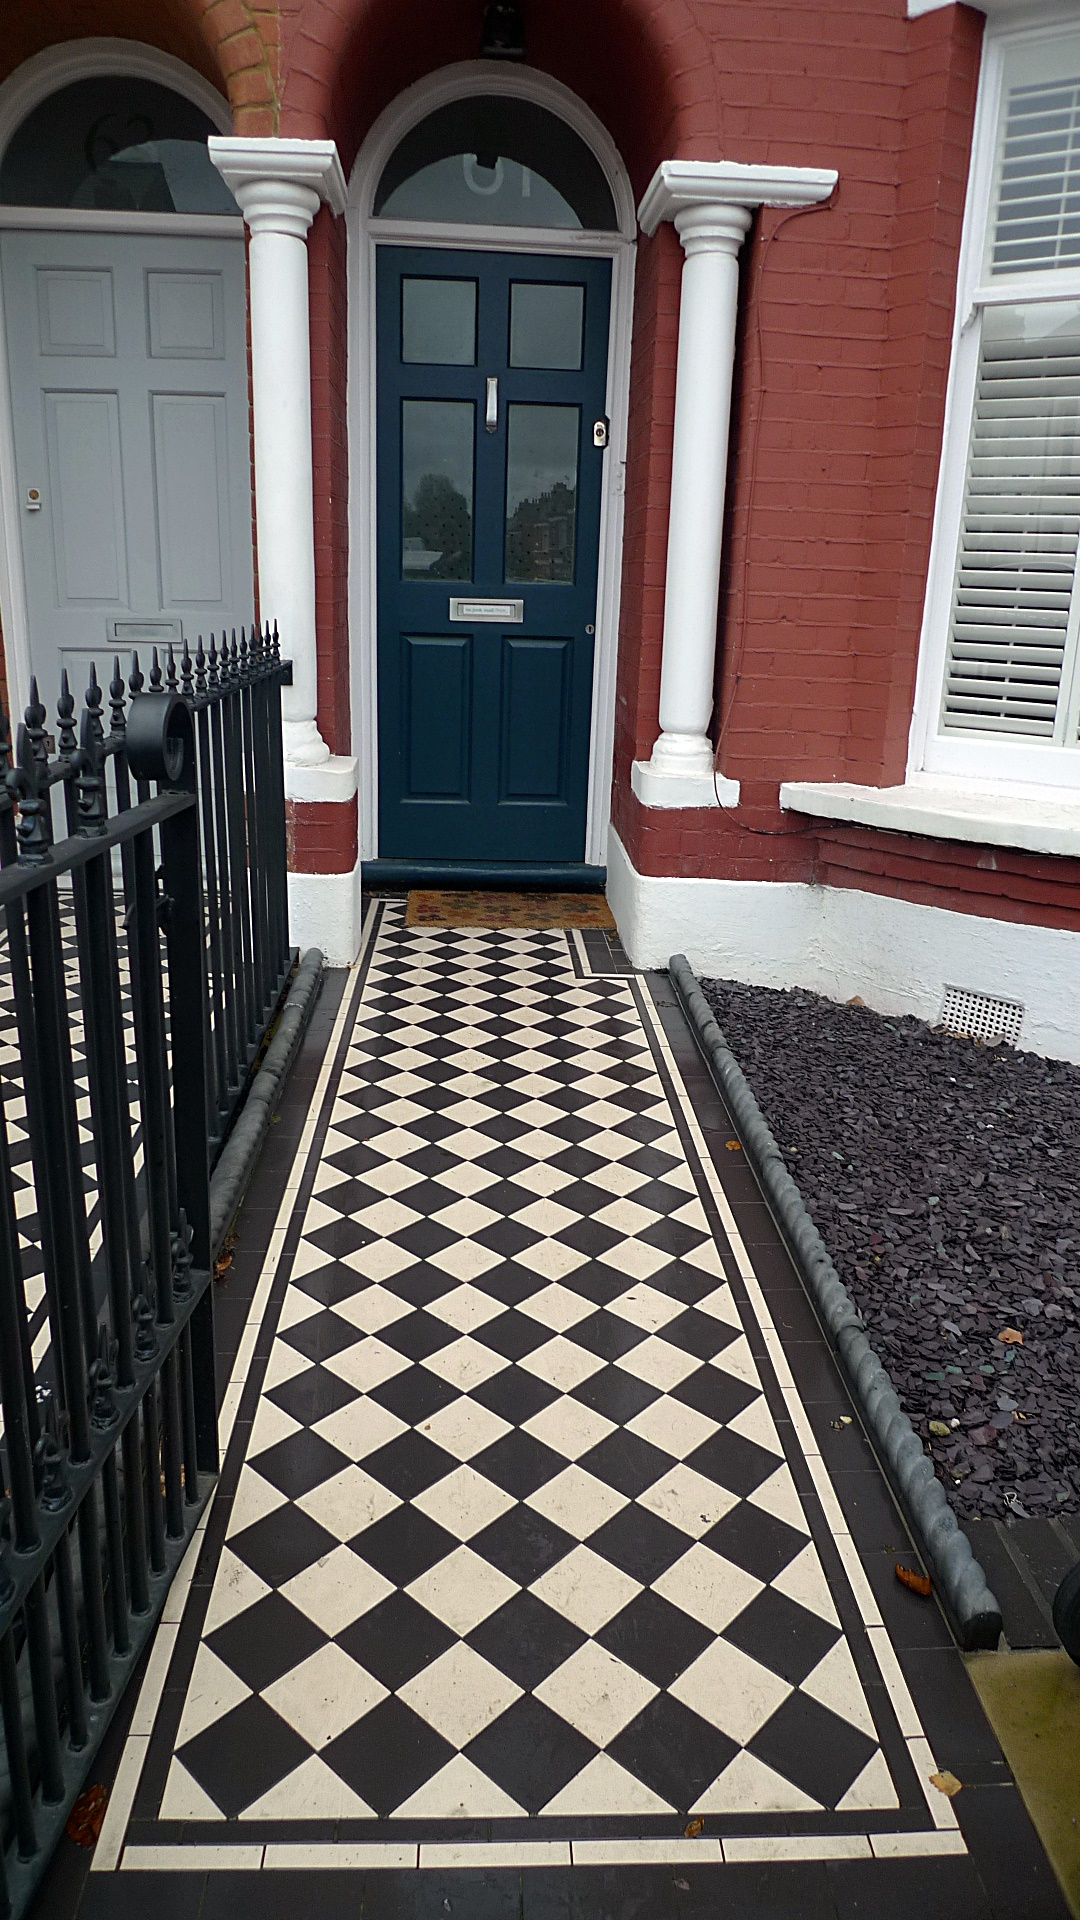 Ornamental stone Victorian mosaic black and white charcoal rope edge tiles metal rail metal gate York stone entrance stone Balham Streatham Clapham Battersea London